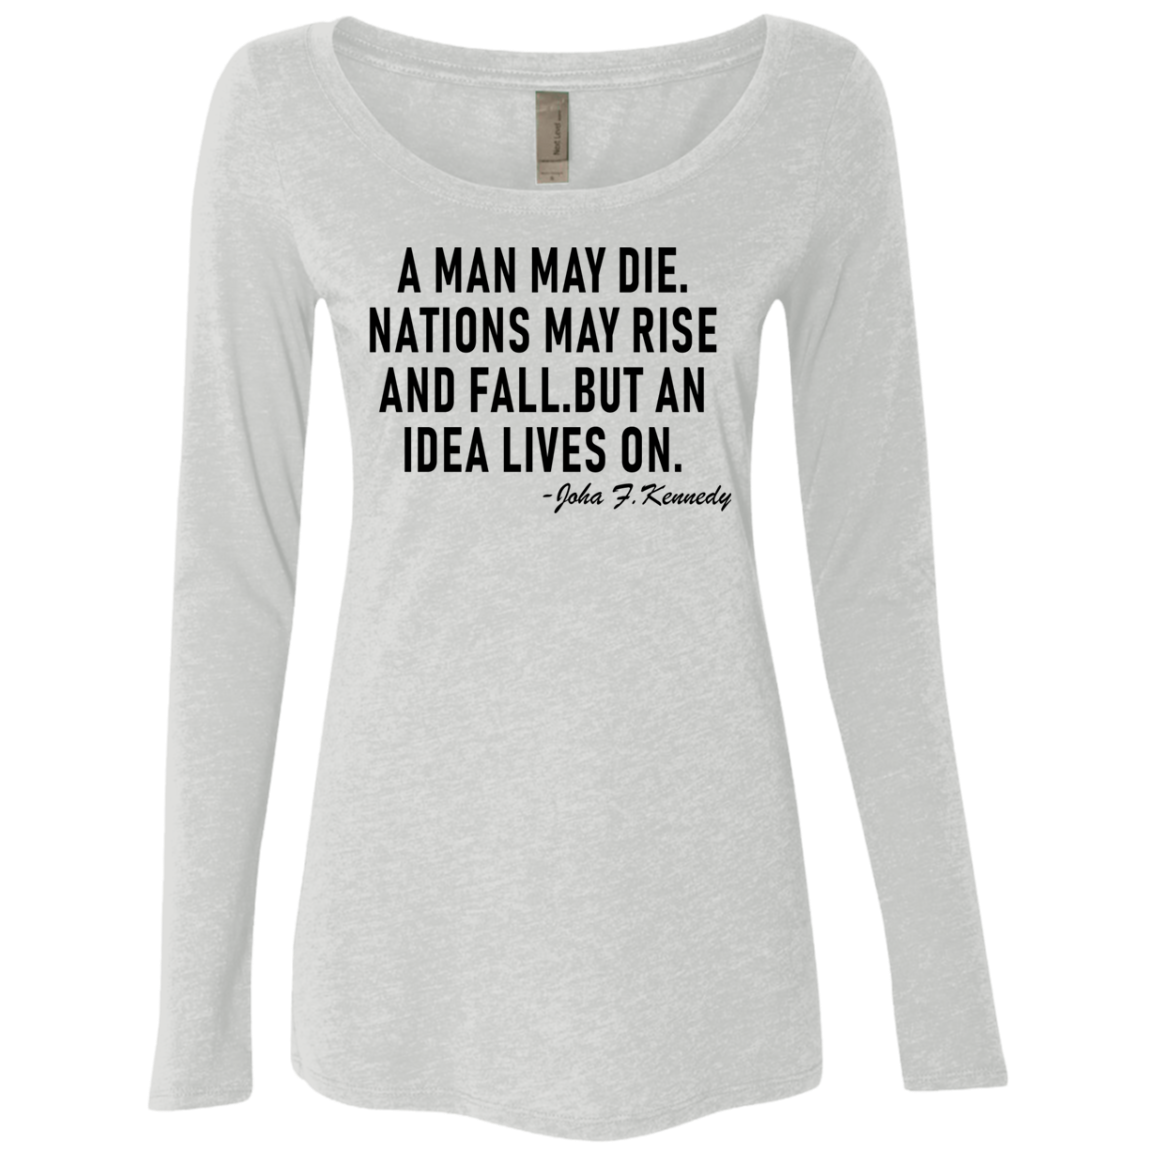 A Man May Die. Nations May Rise And Fall, But An Idea Lives On Women's Long Sleeve Tee